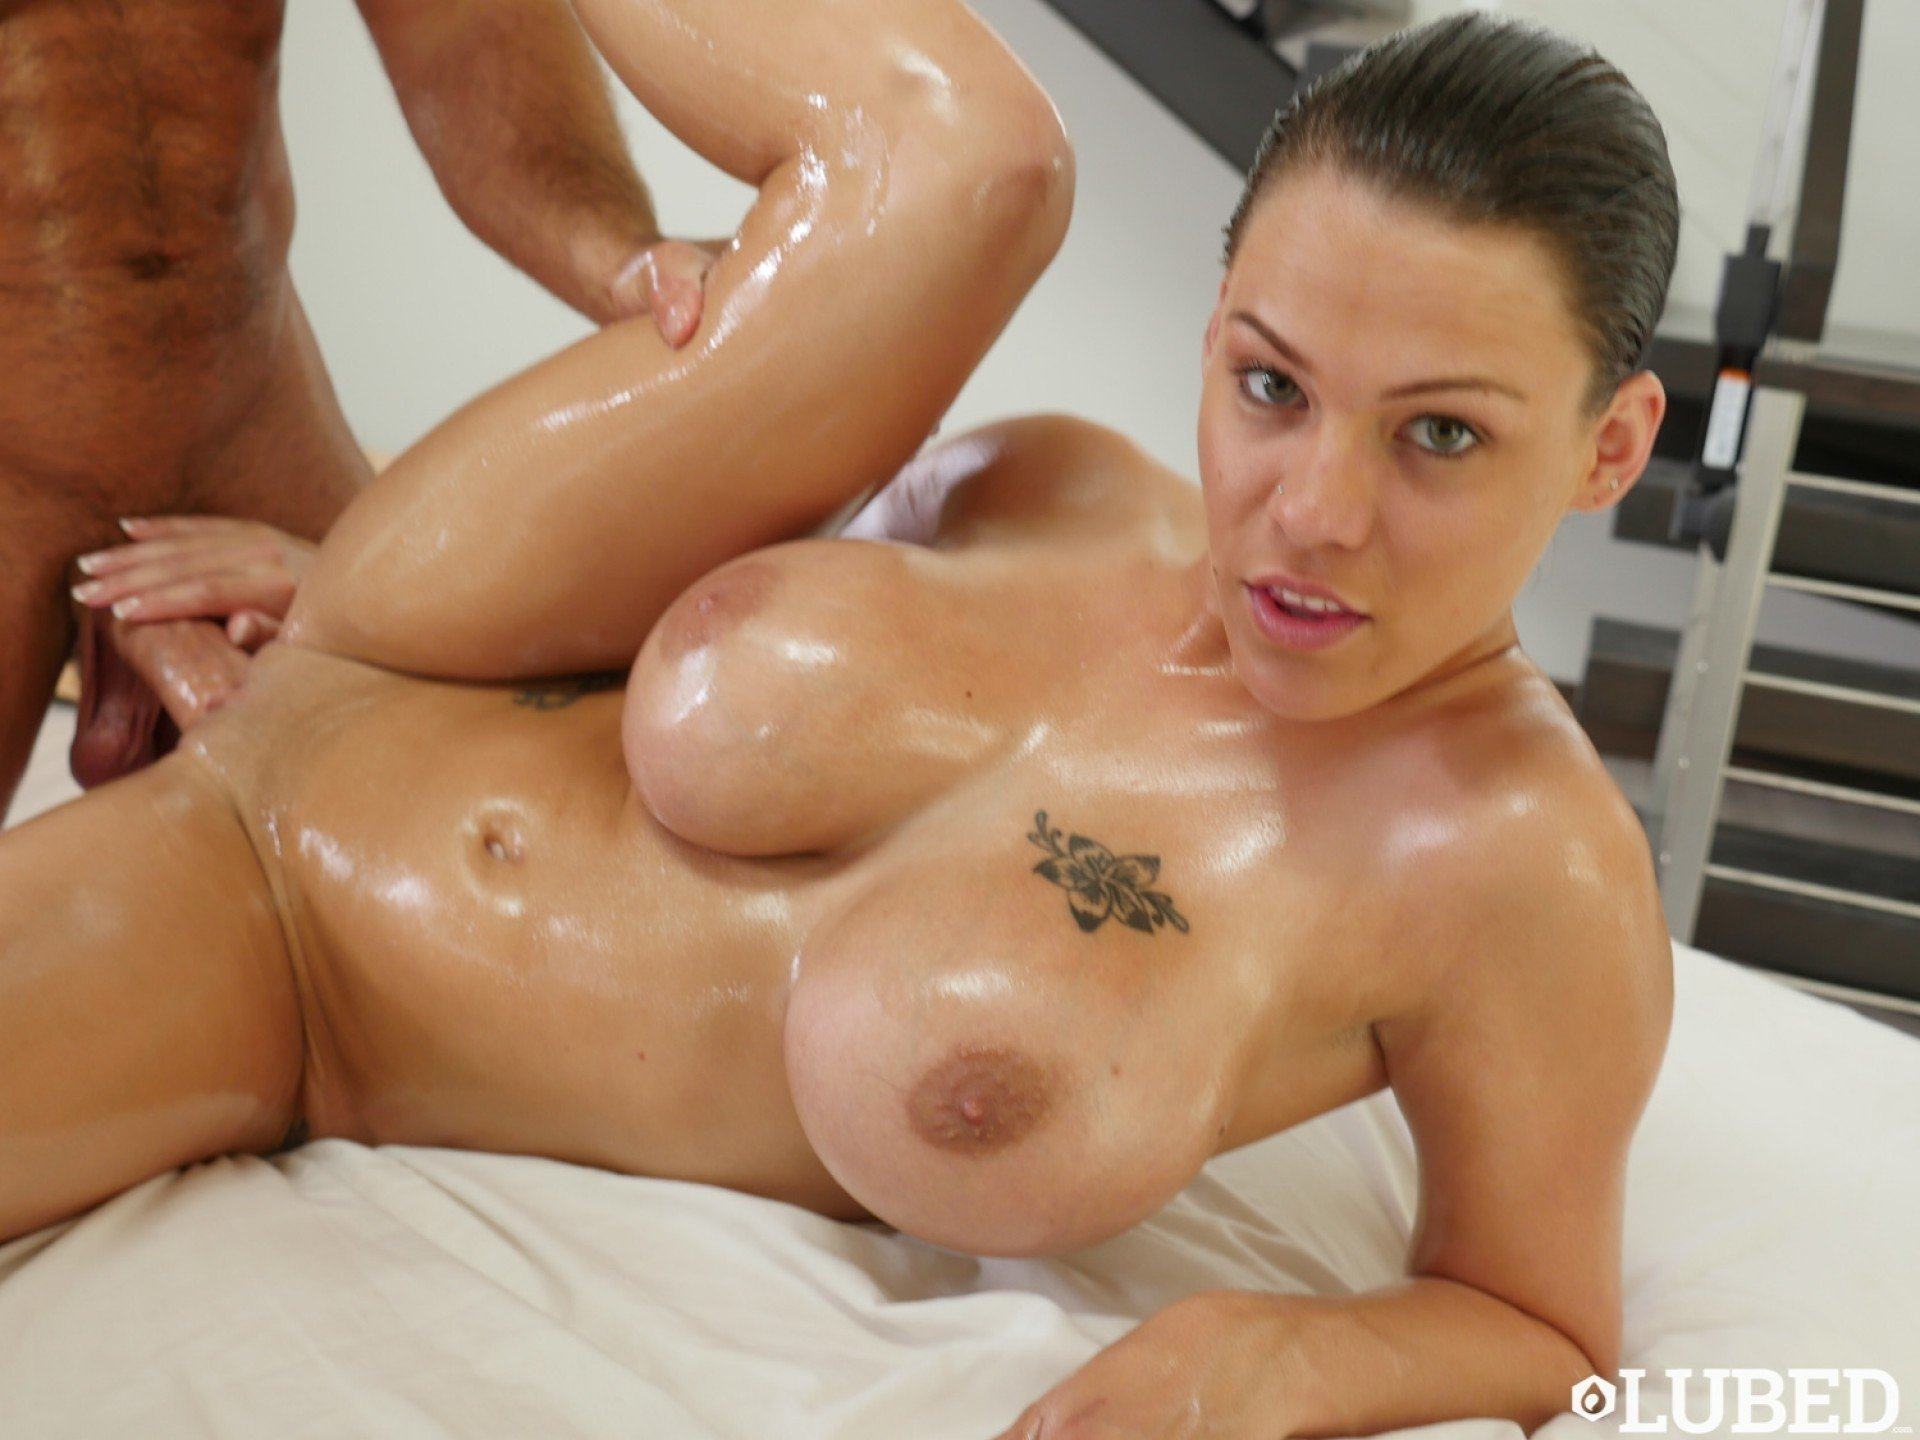 Oiled big tits youporn